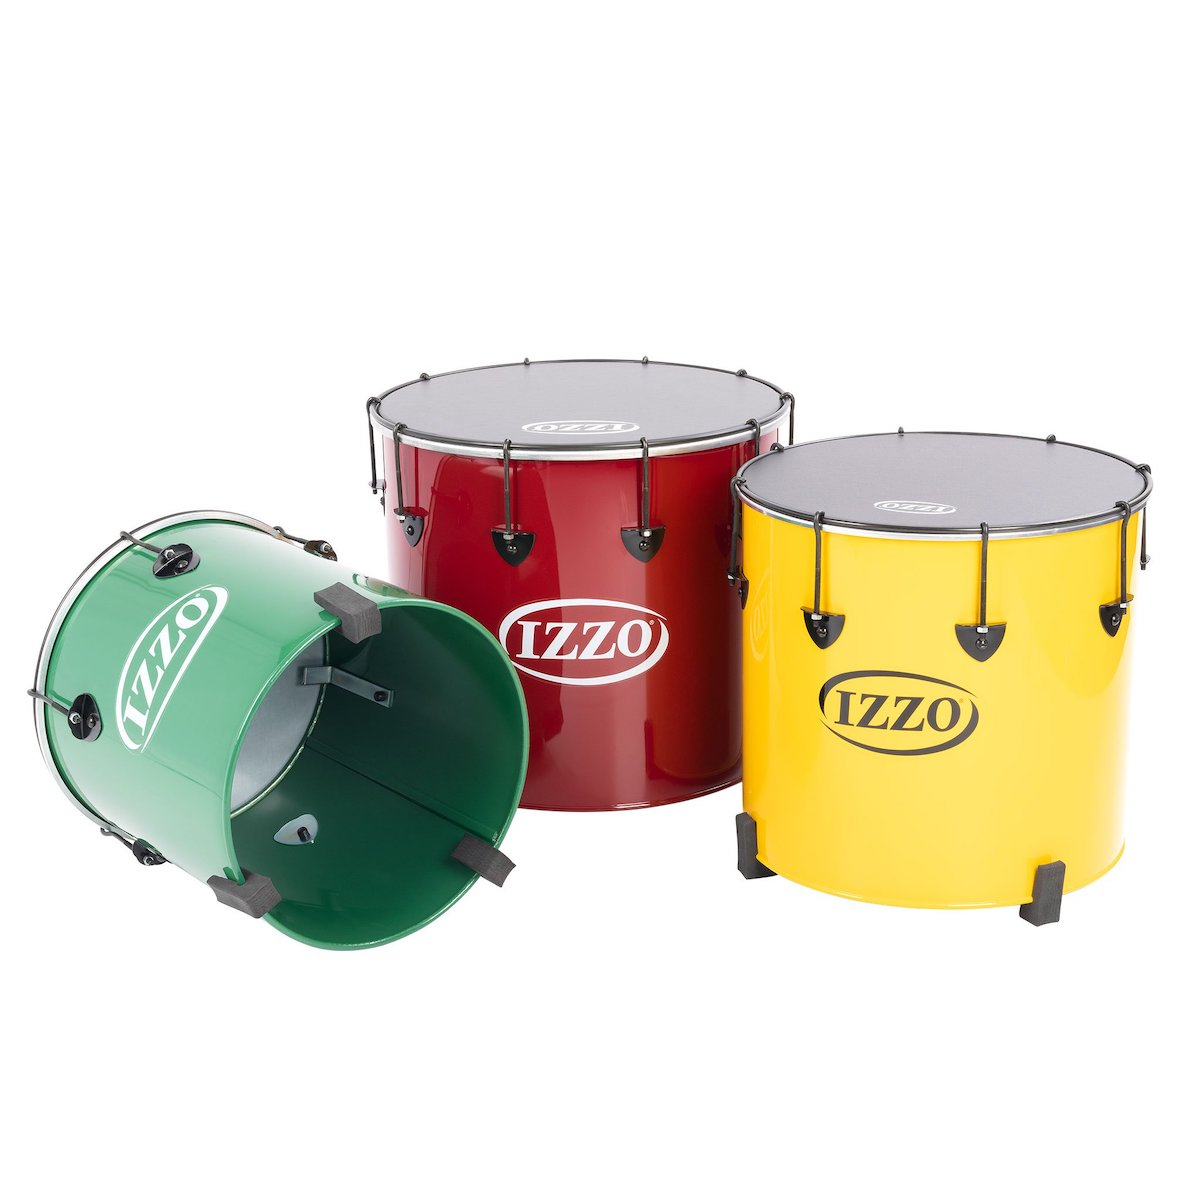 "Izzo Castle Surdos: Set of 3 nesting samba drums - 14"", 16"", 18"""